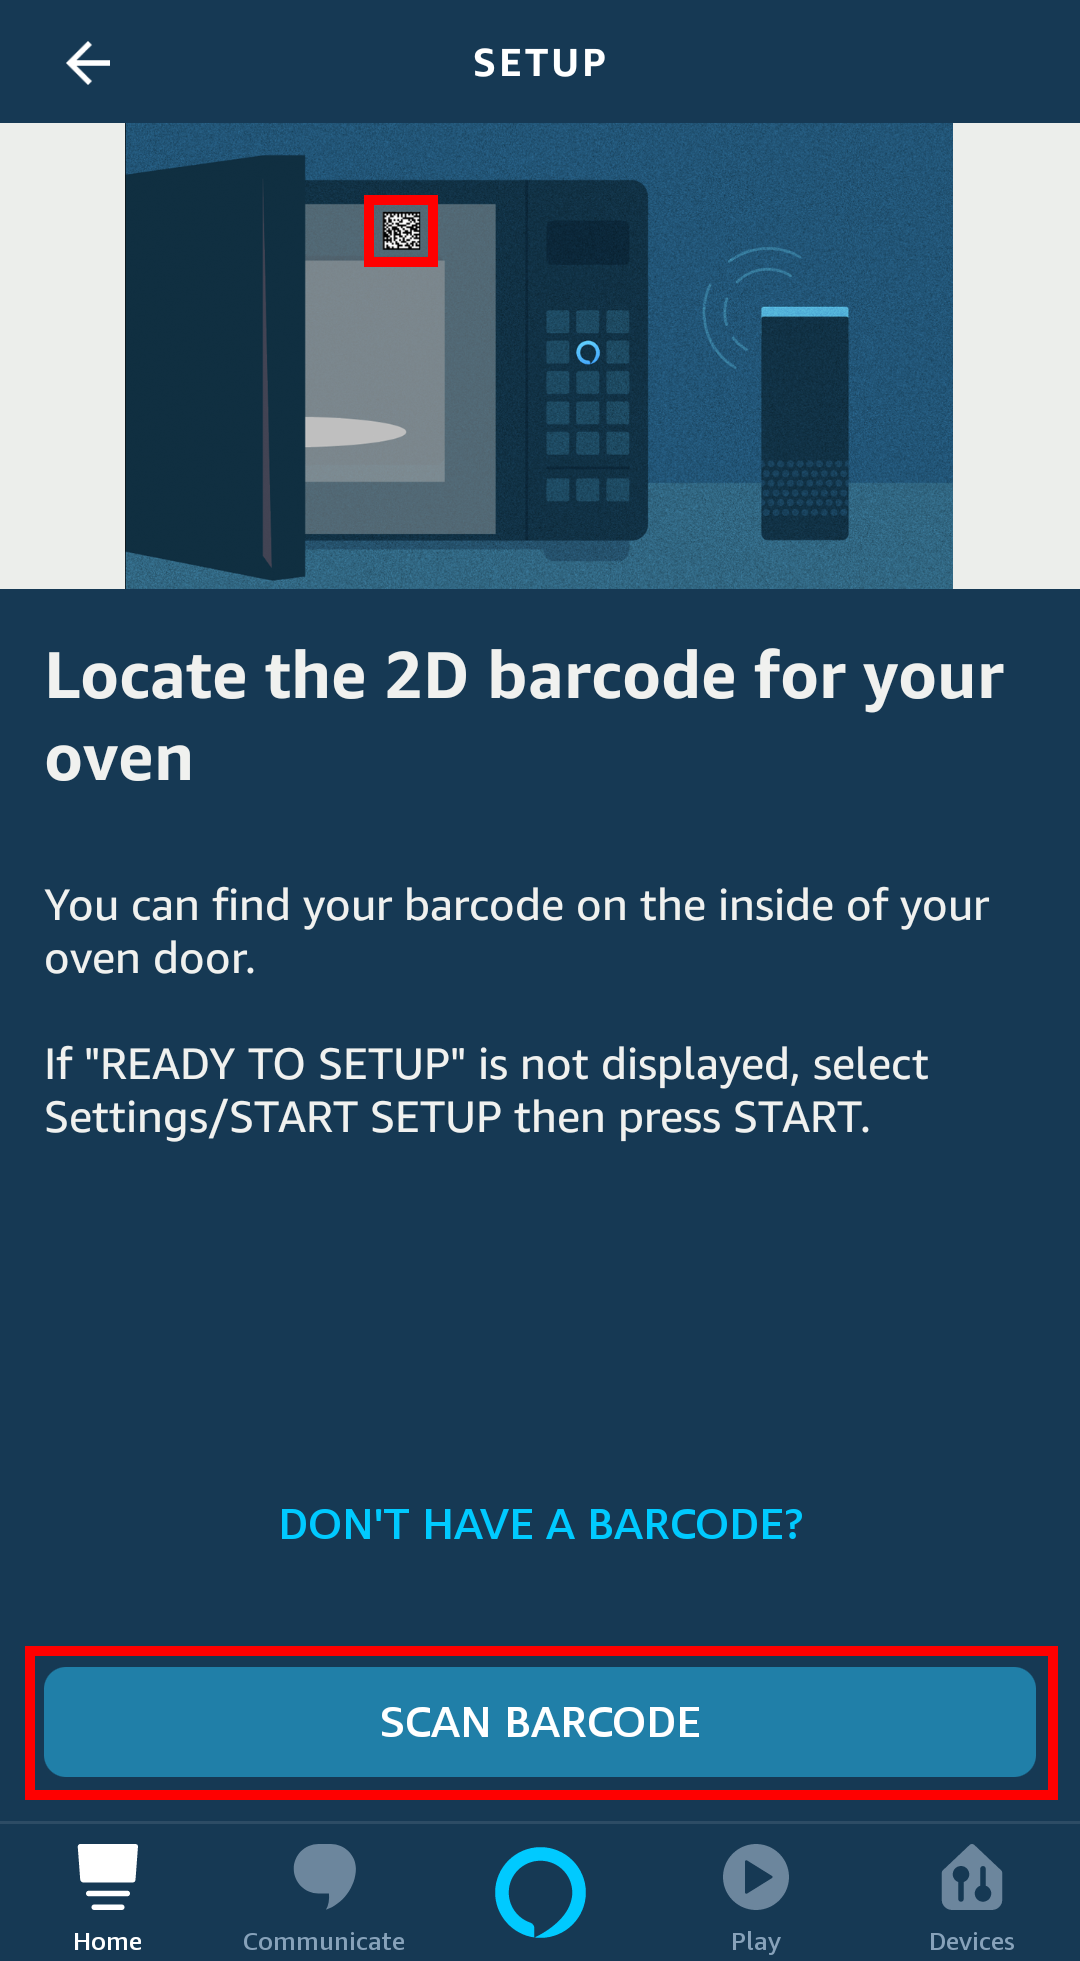 Screenshot of the Amazon Alexa app. The screen is showing the barcode scanning process to follow to add an Amazon Smart Oven.